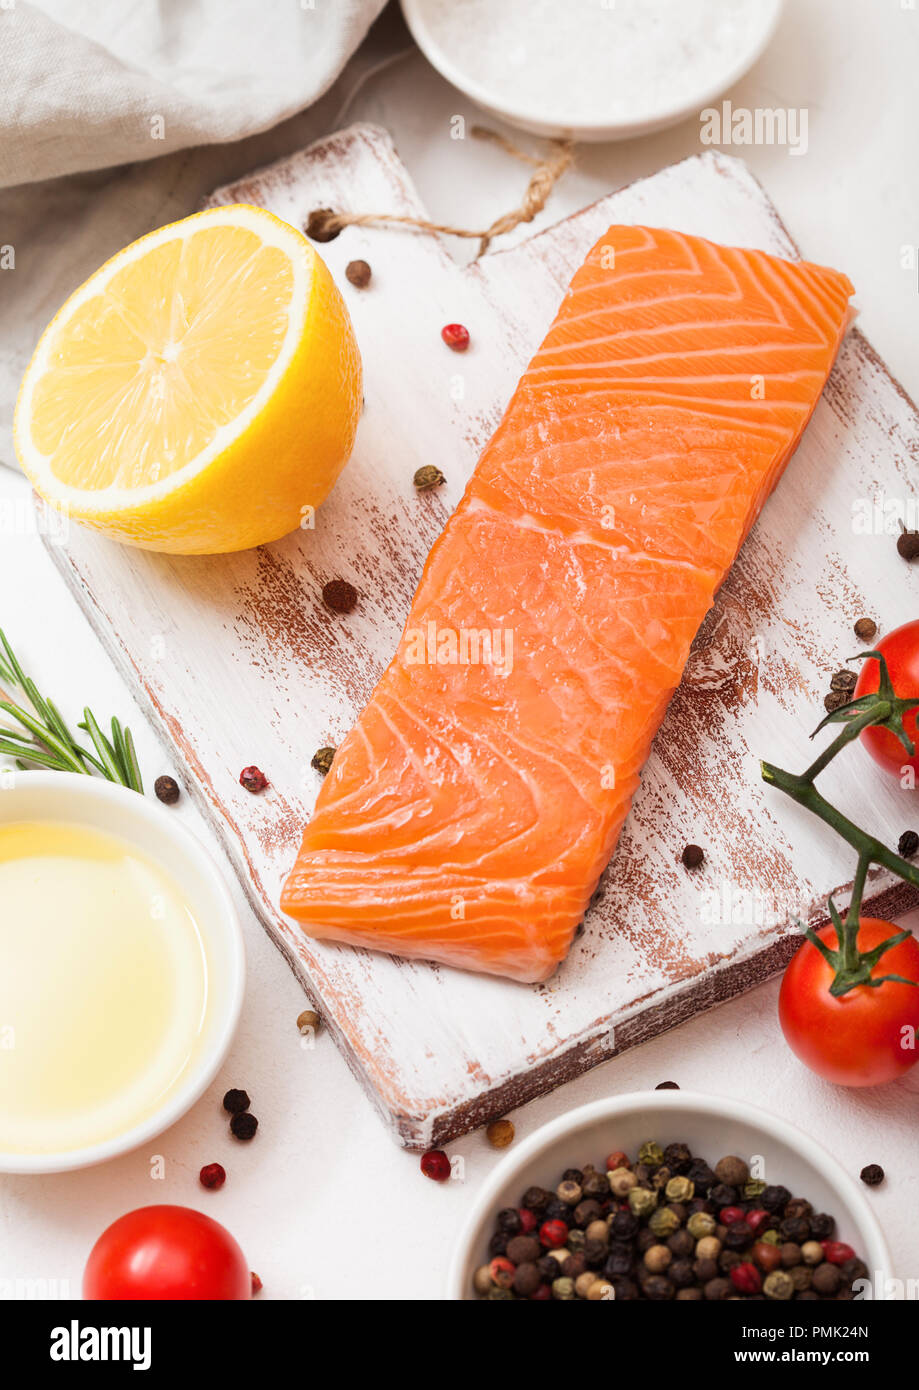 Plastic container with fresh salmon slice with oil tomatoes and